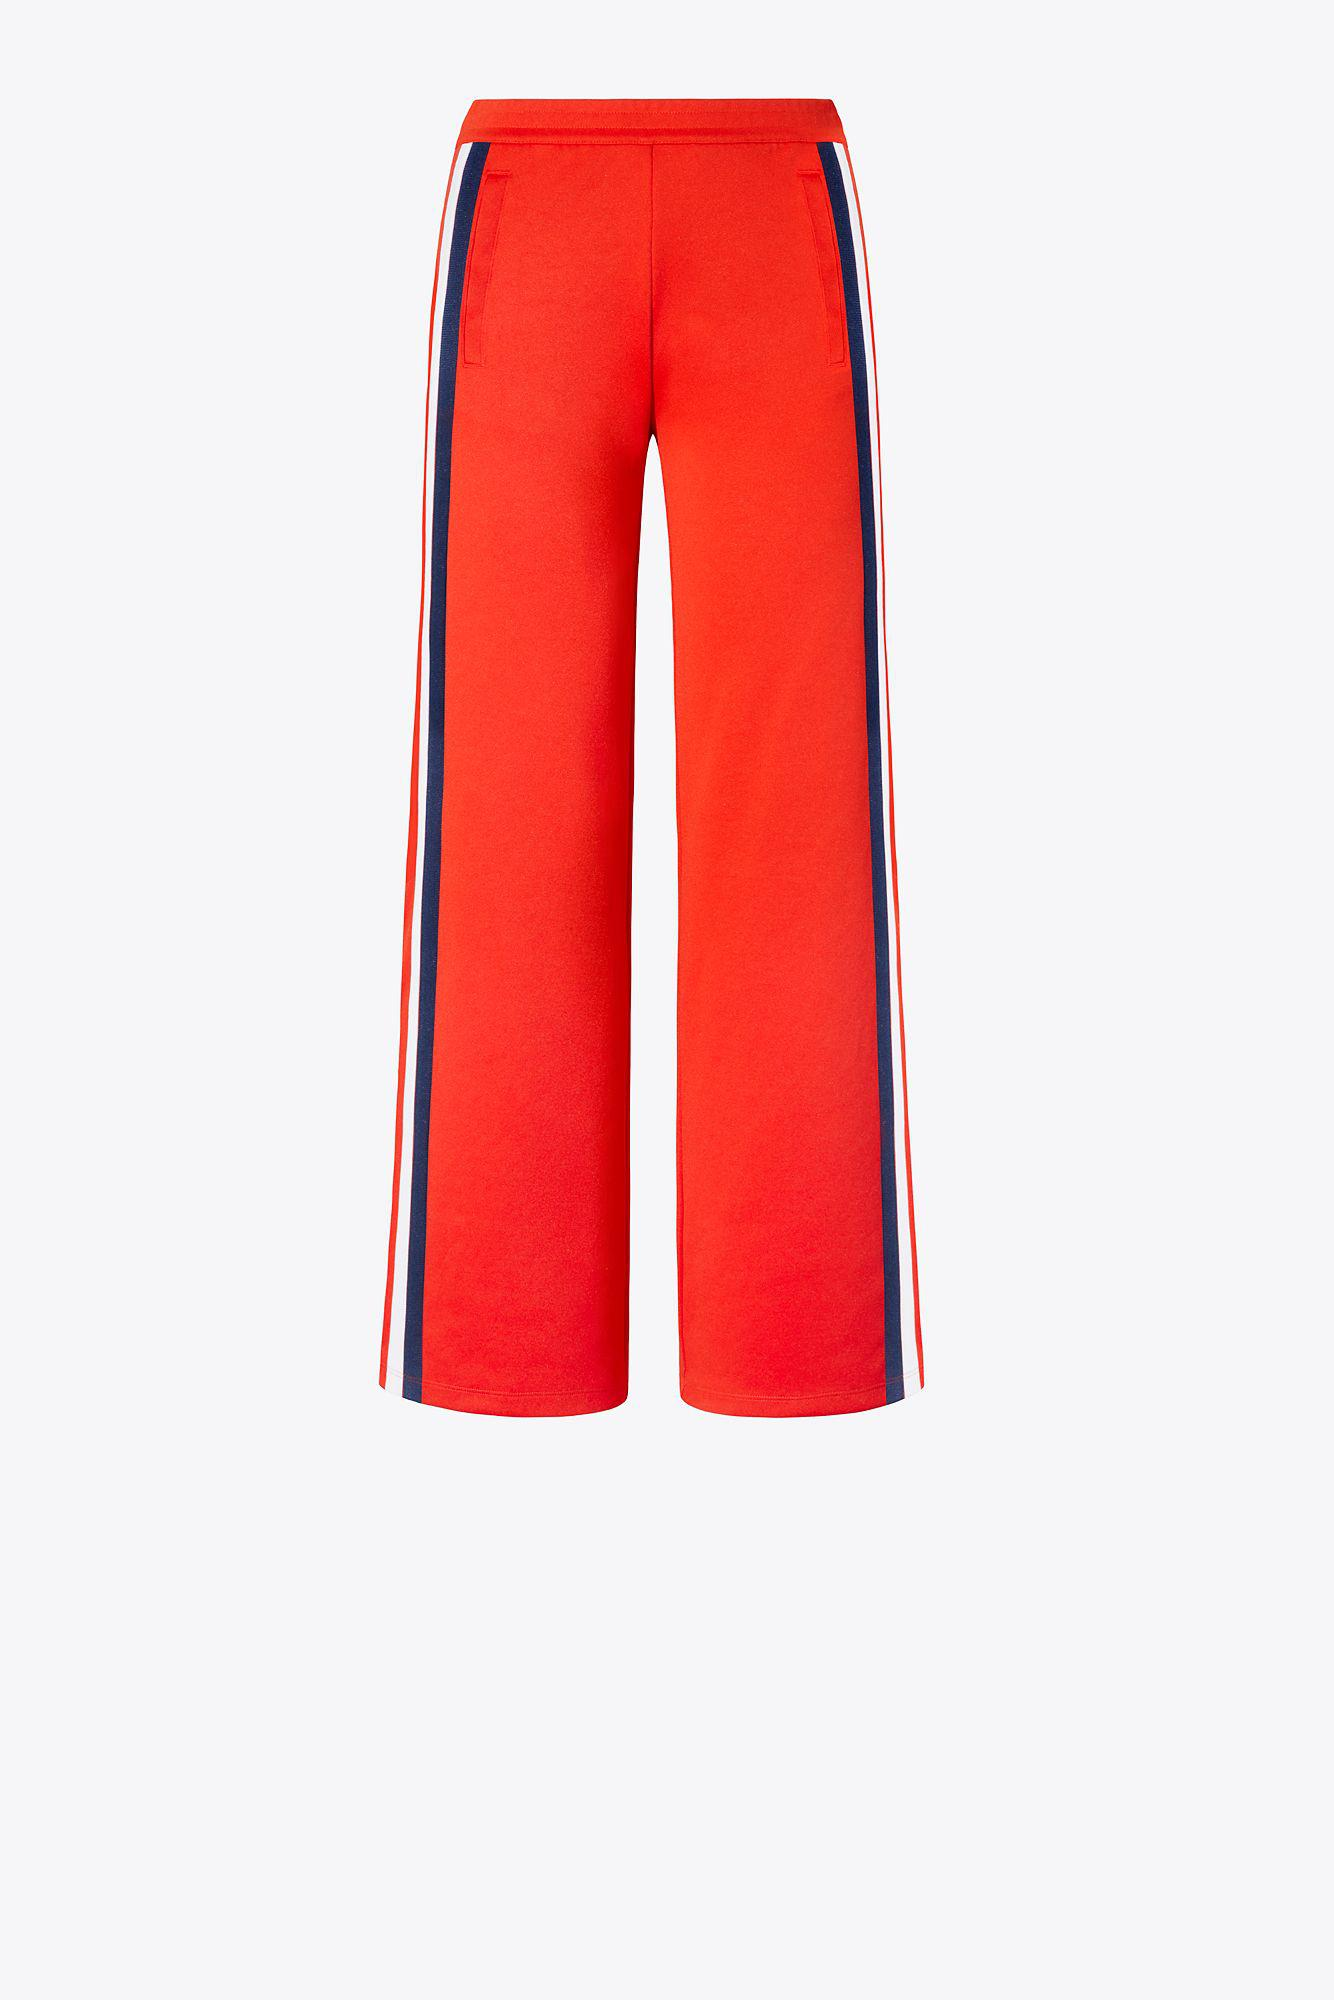 fa788e6a26674 Tory Sport Tory Burch Double-stripe Wide-leg Track Pants in Red - Lyst